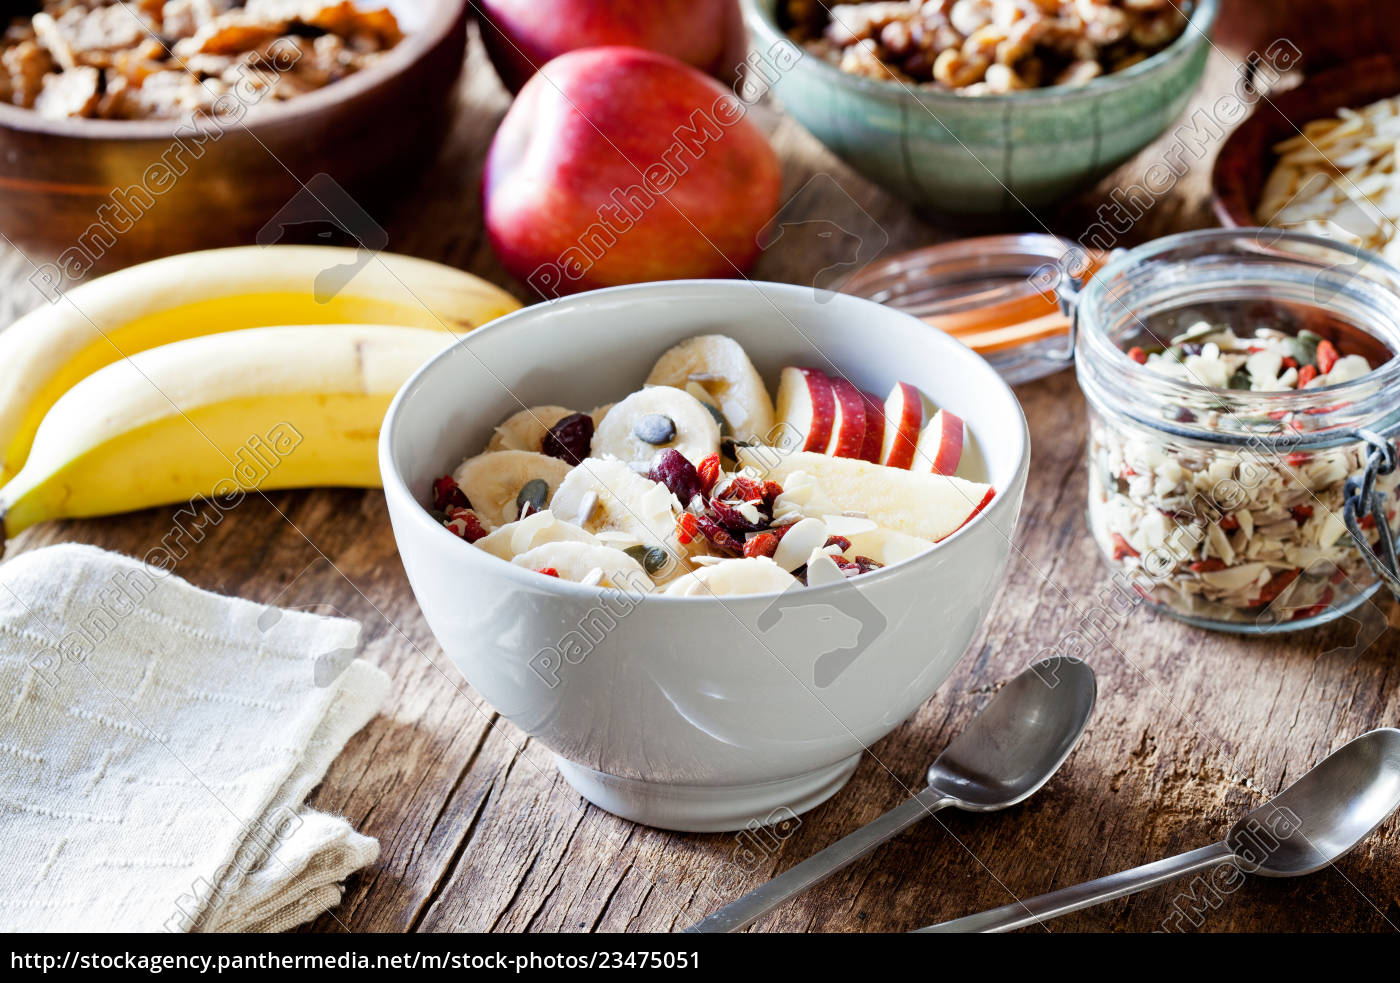 healthy, yogurt, with, cereal, and, fruits - 23475051